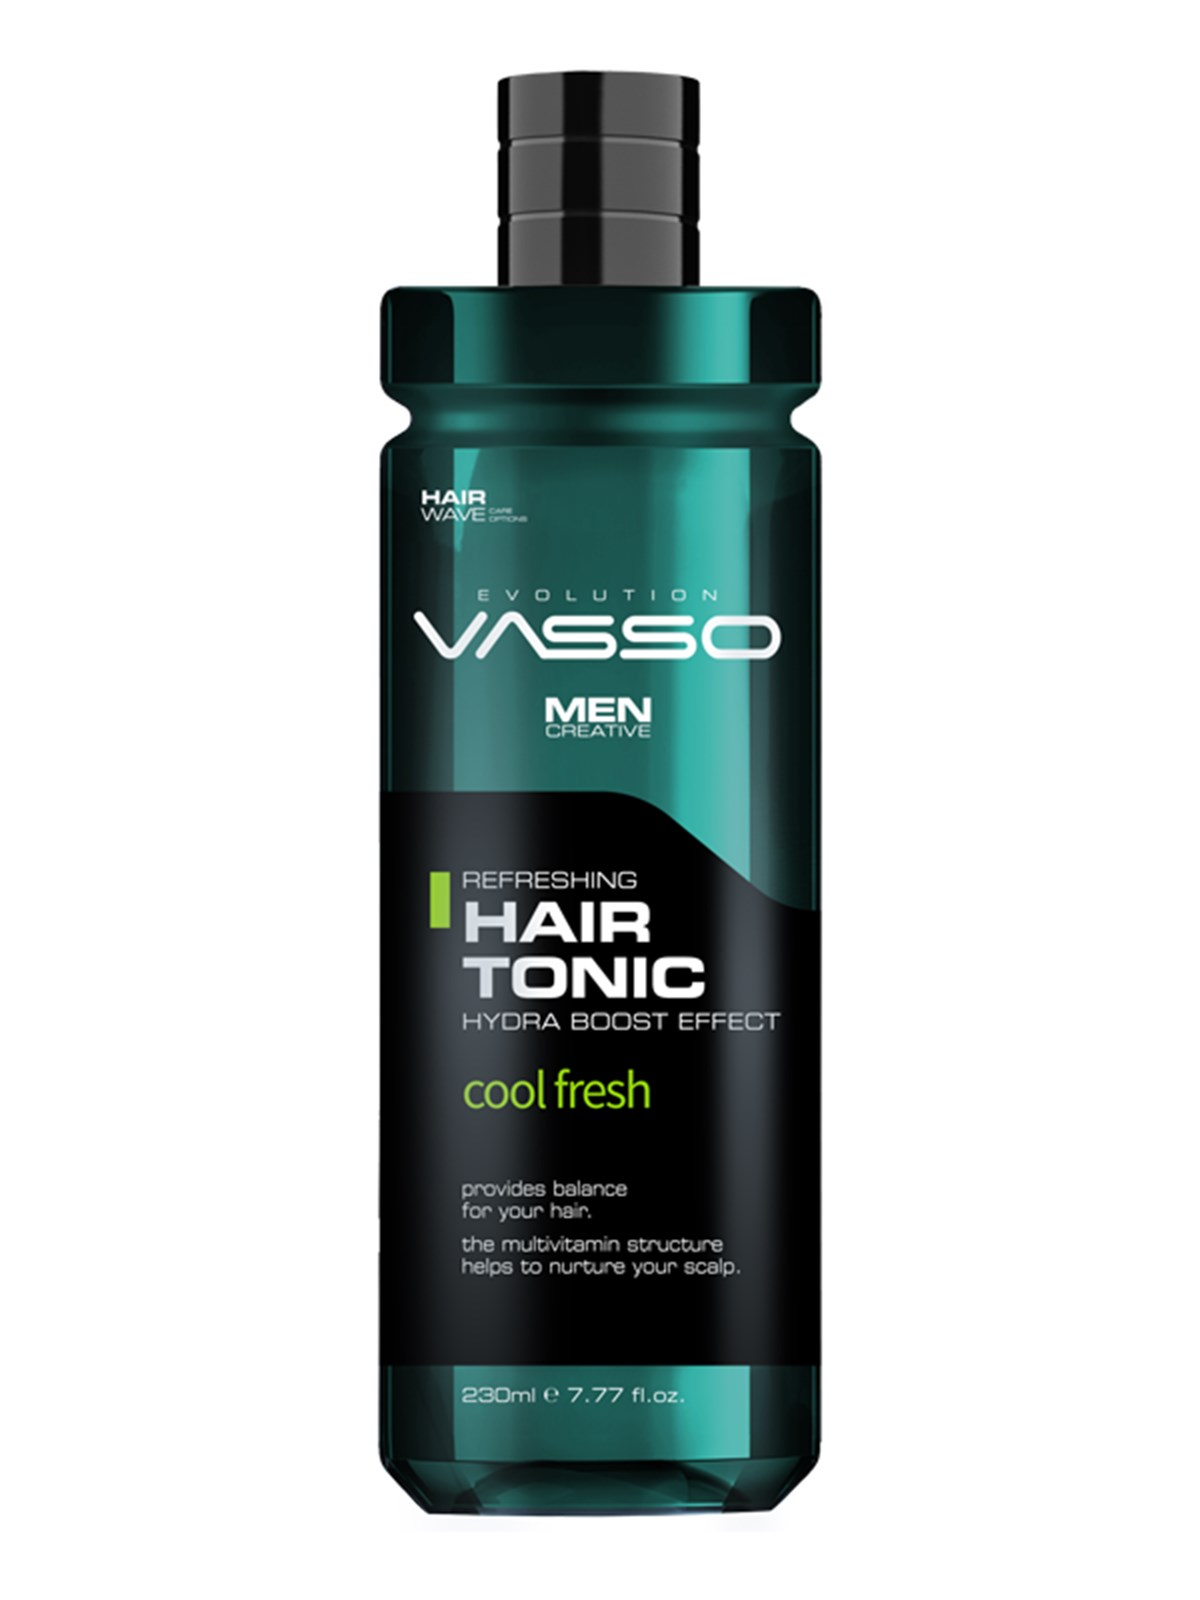 hair tonic revitalizing cool fresh for a c070